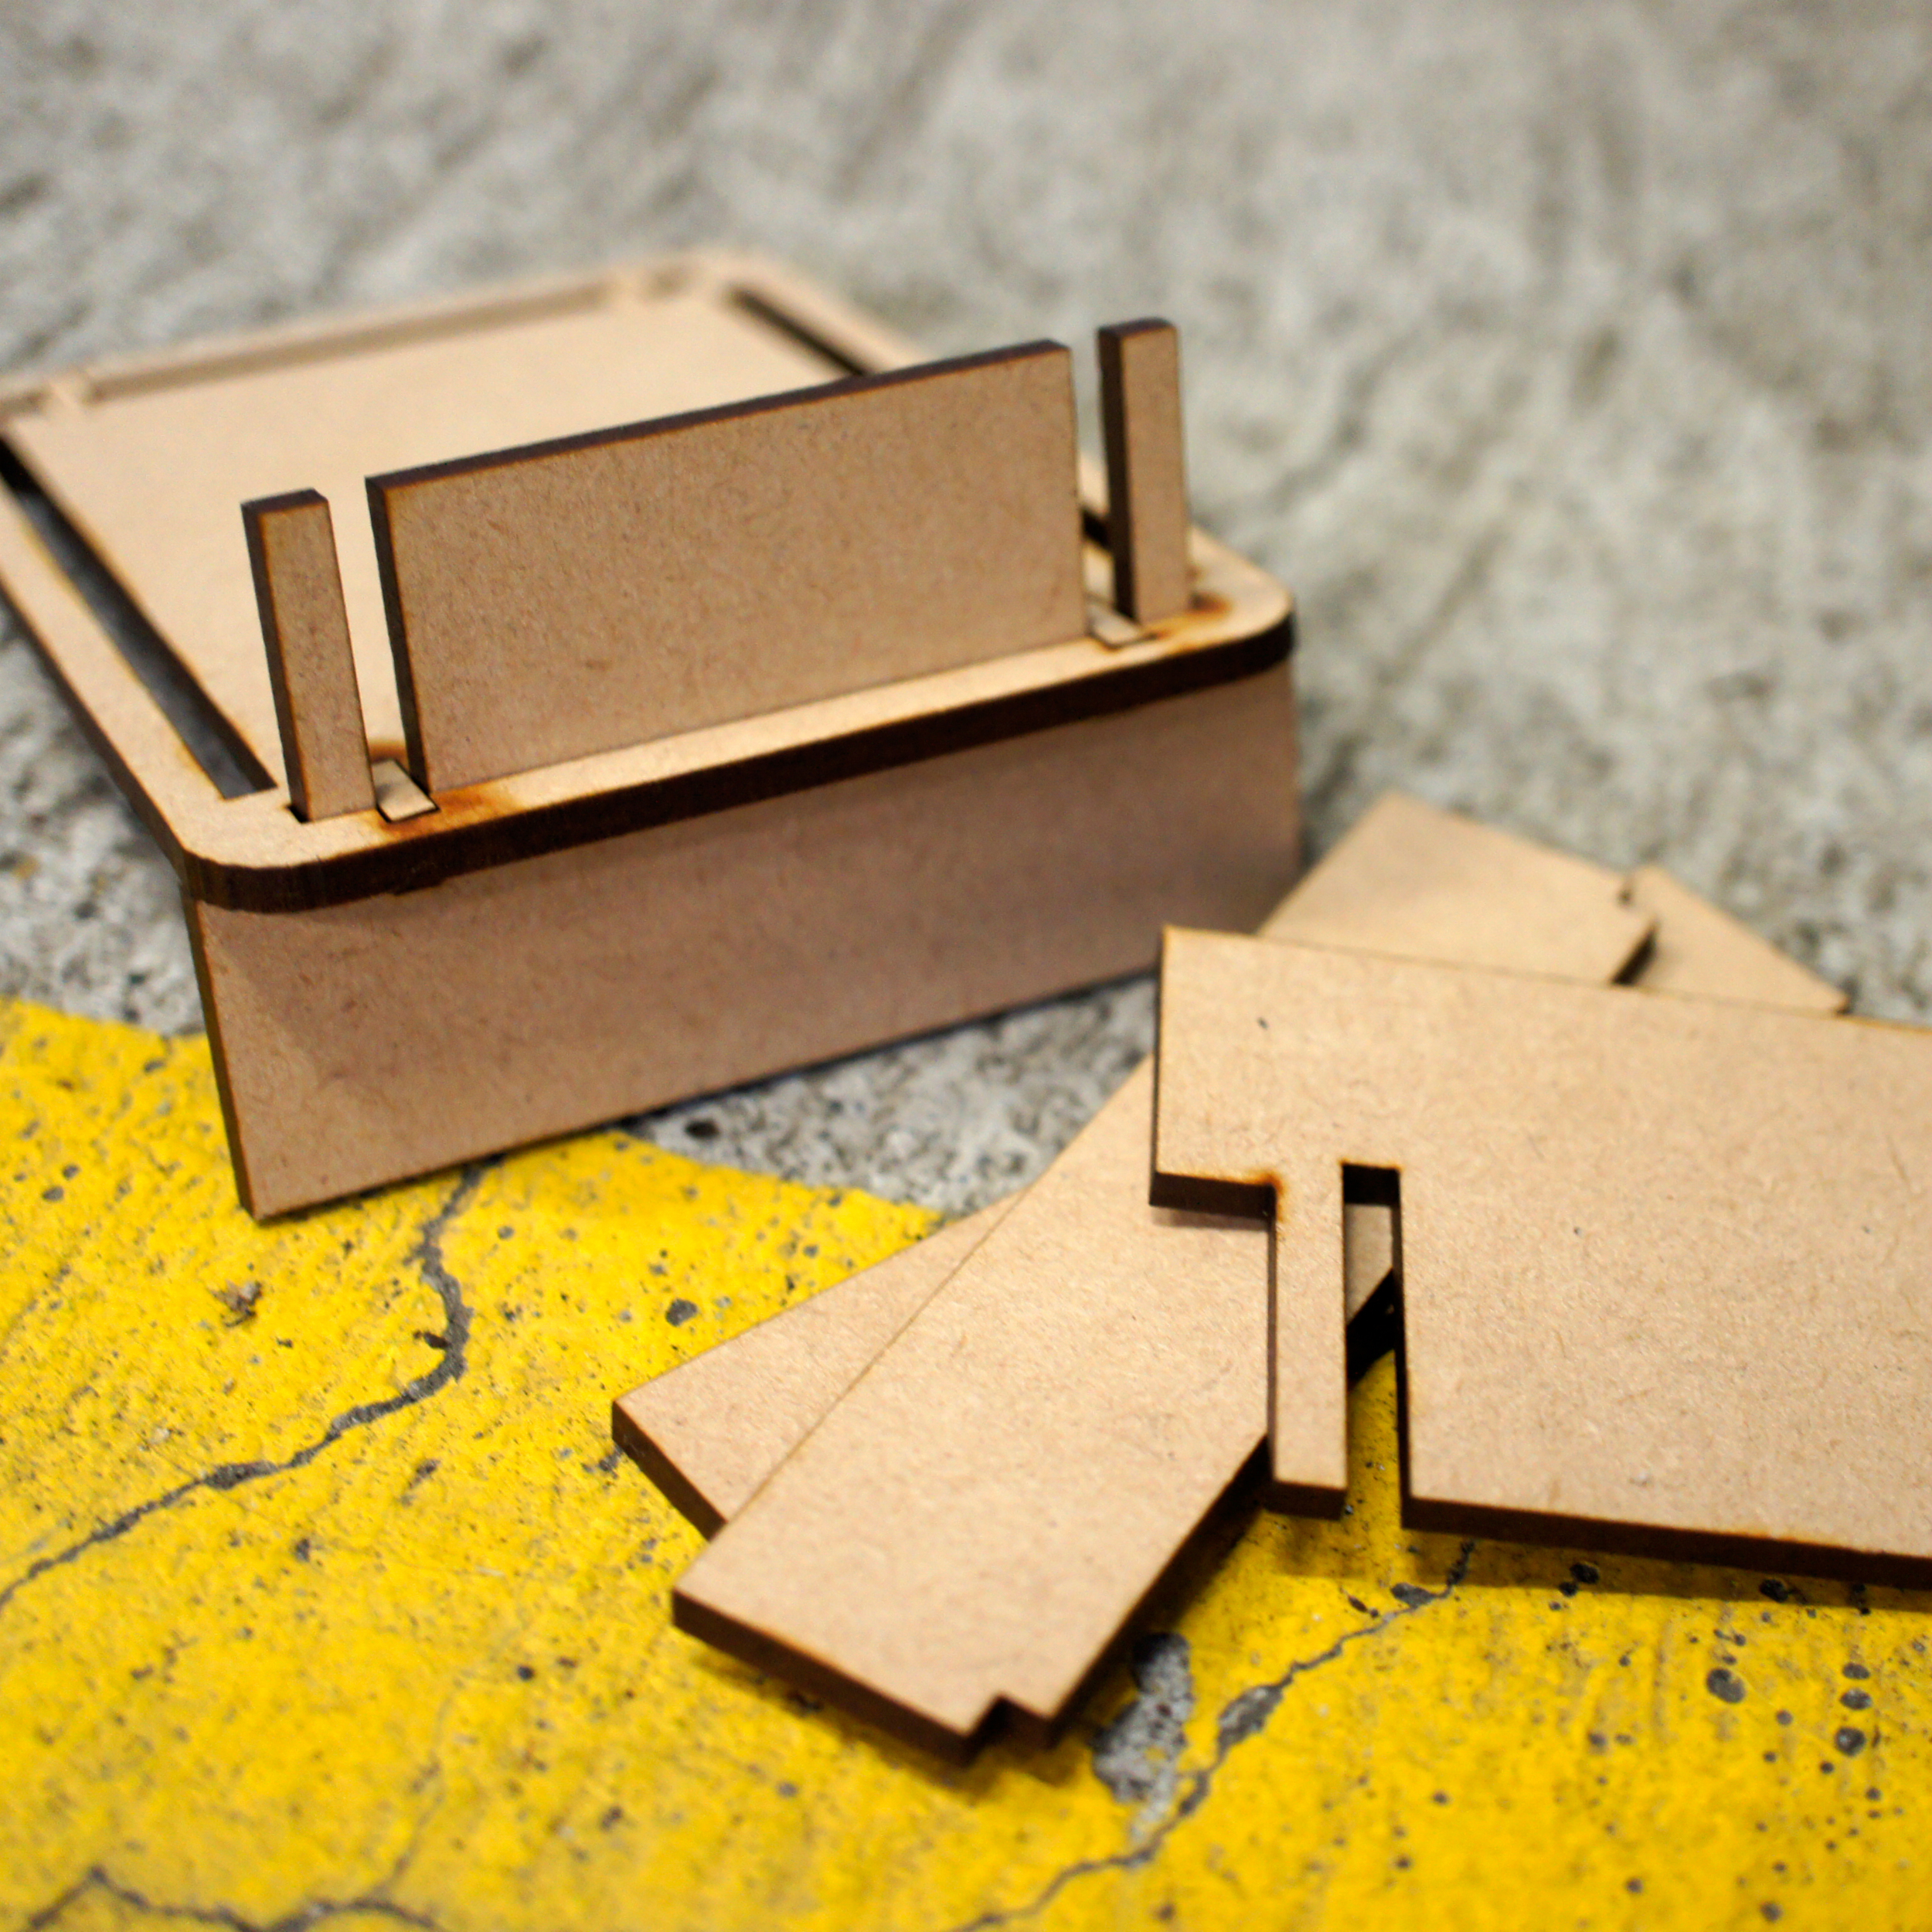 2013 Laser Cut Disaster Relief